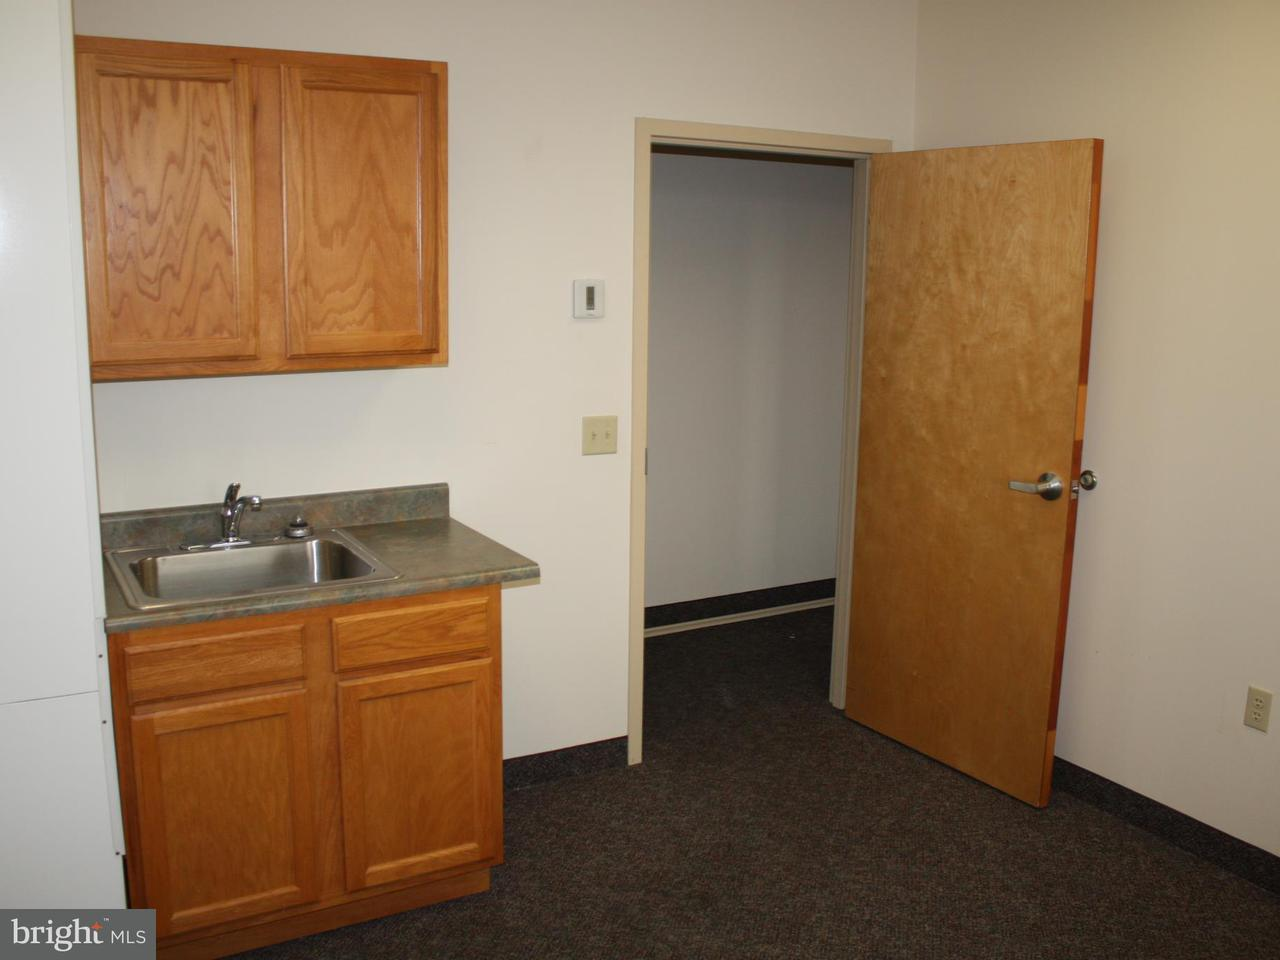 Other Residential for Rent at 375 Floral Ave #104 Chambersburg, Pennsylvania 17201 United States